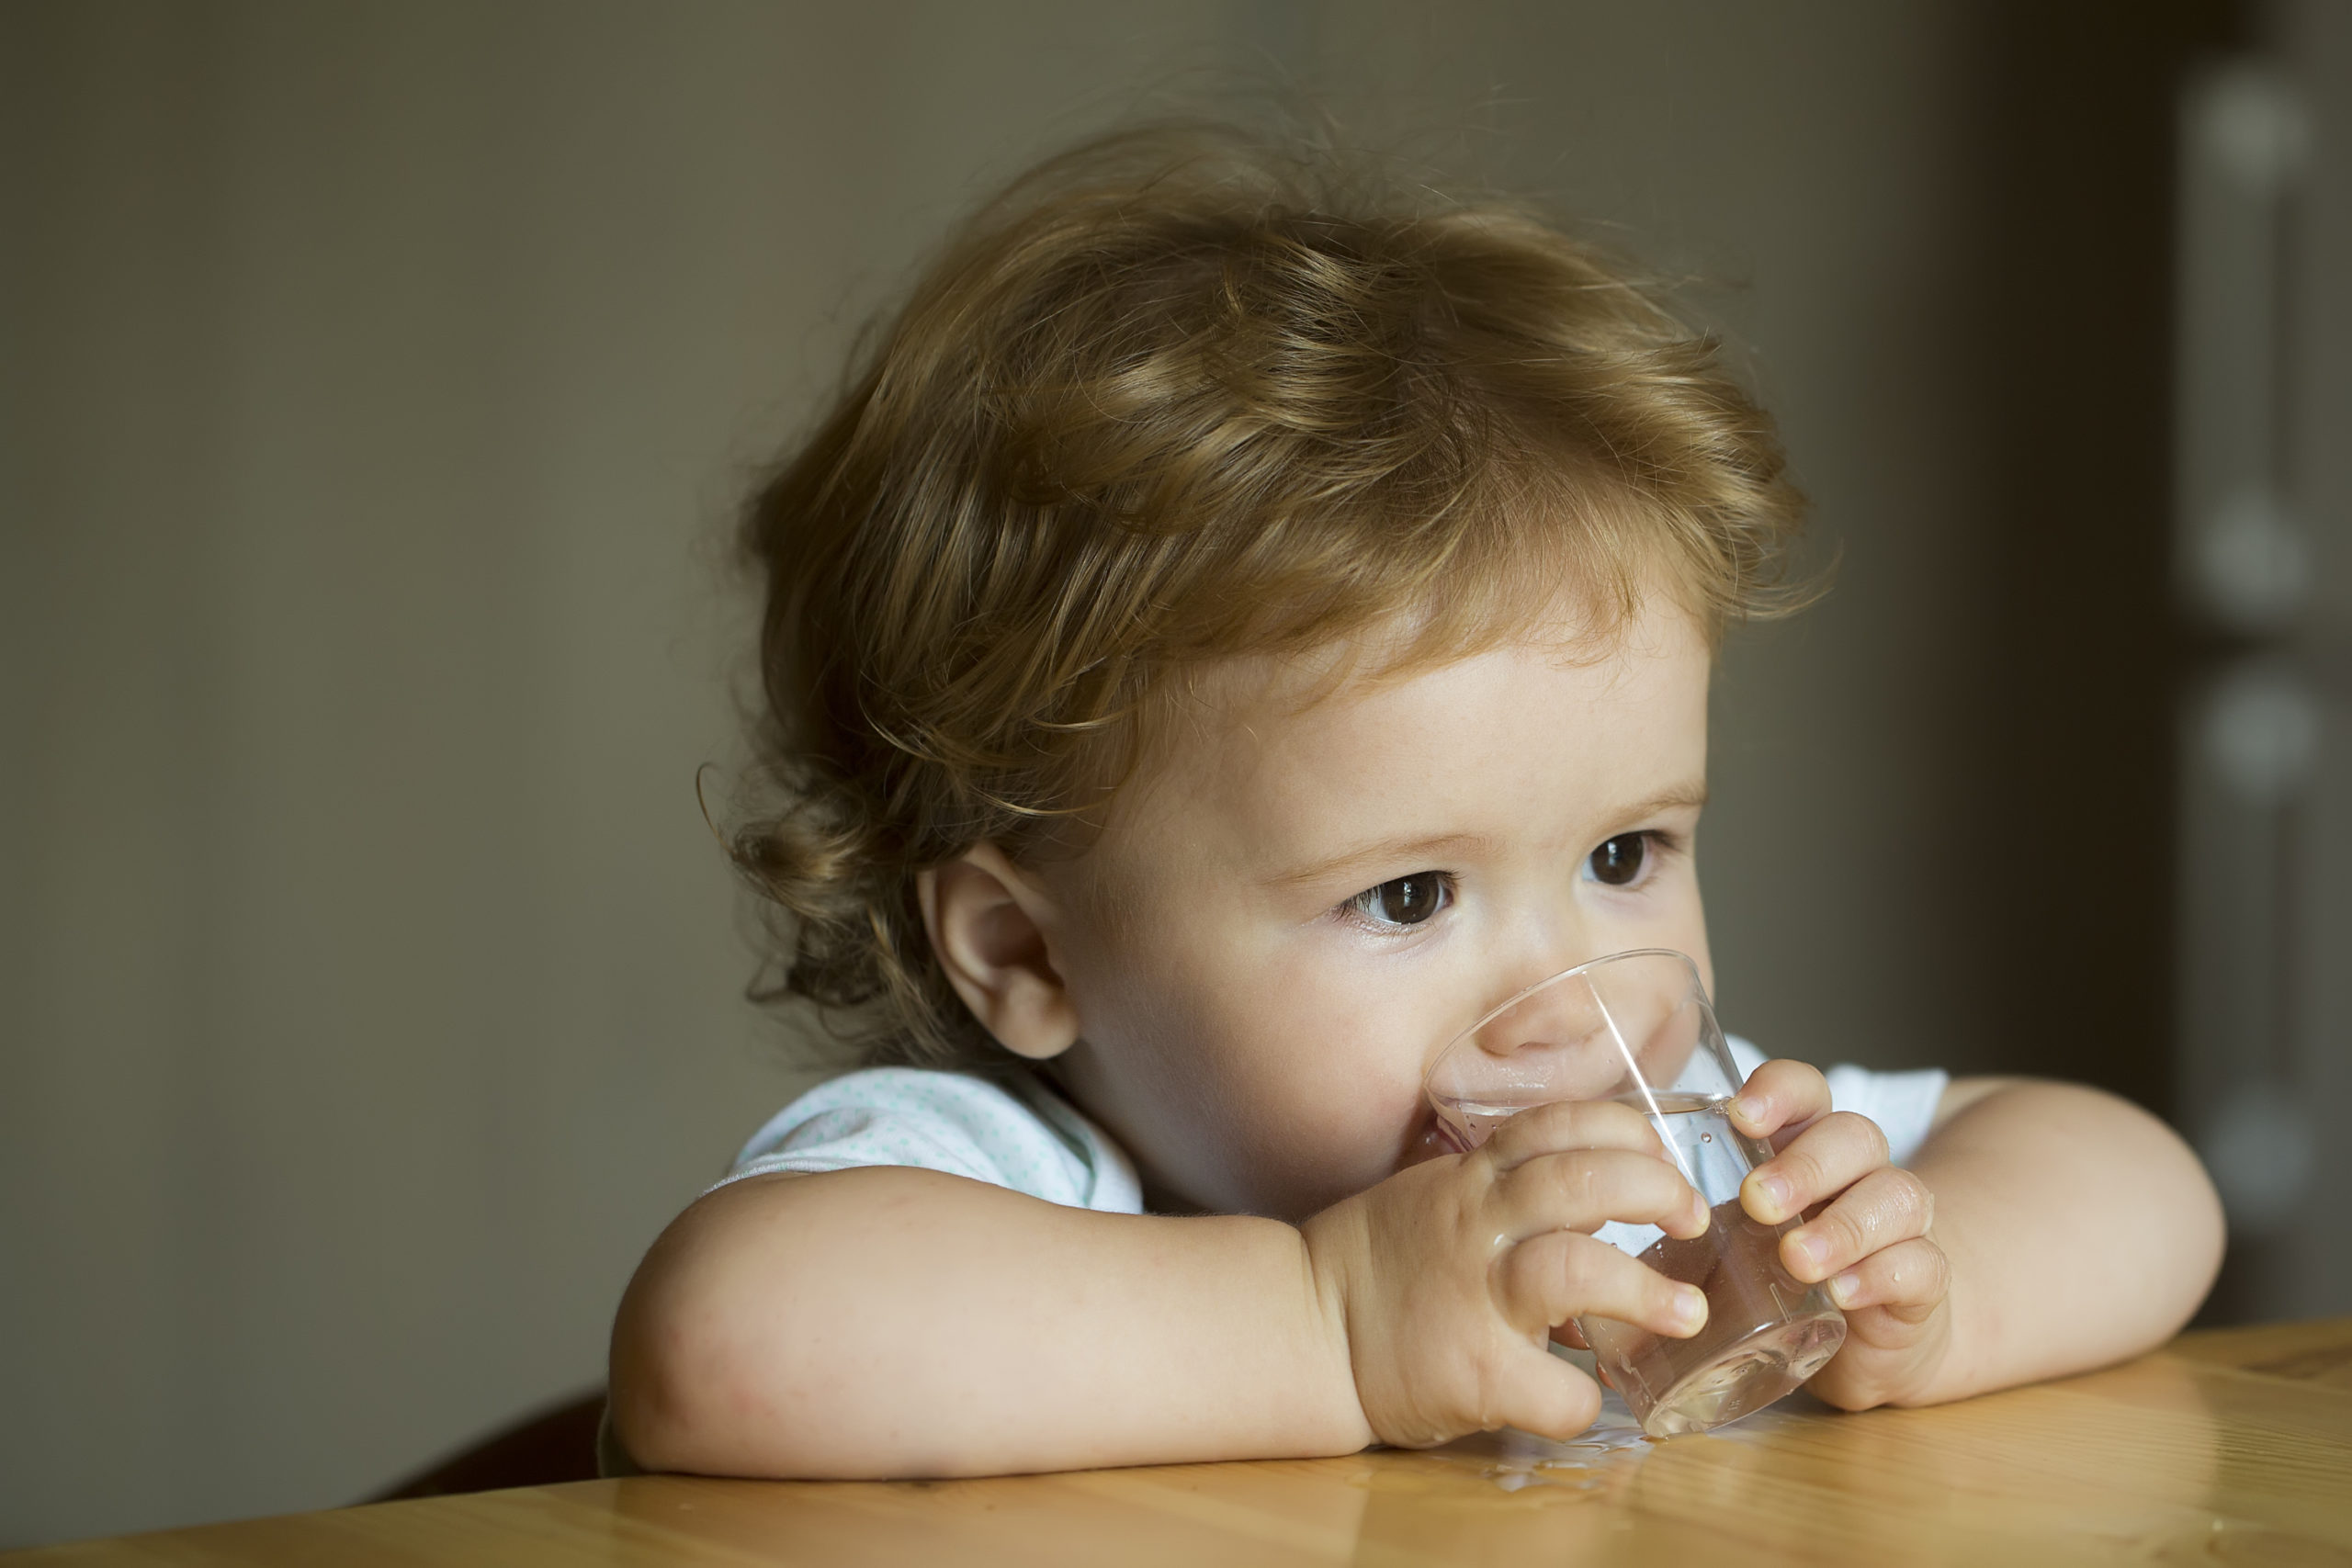 infant drinking glass of water